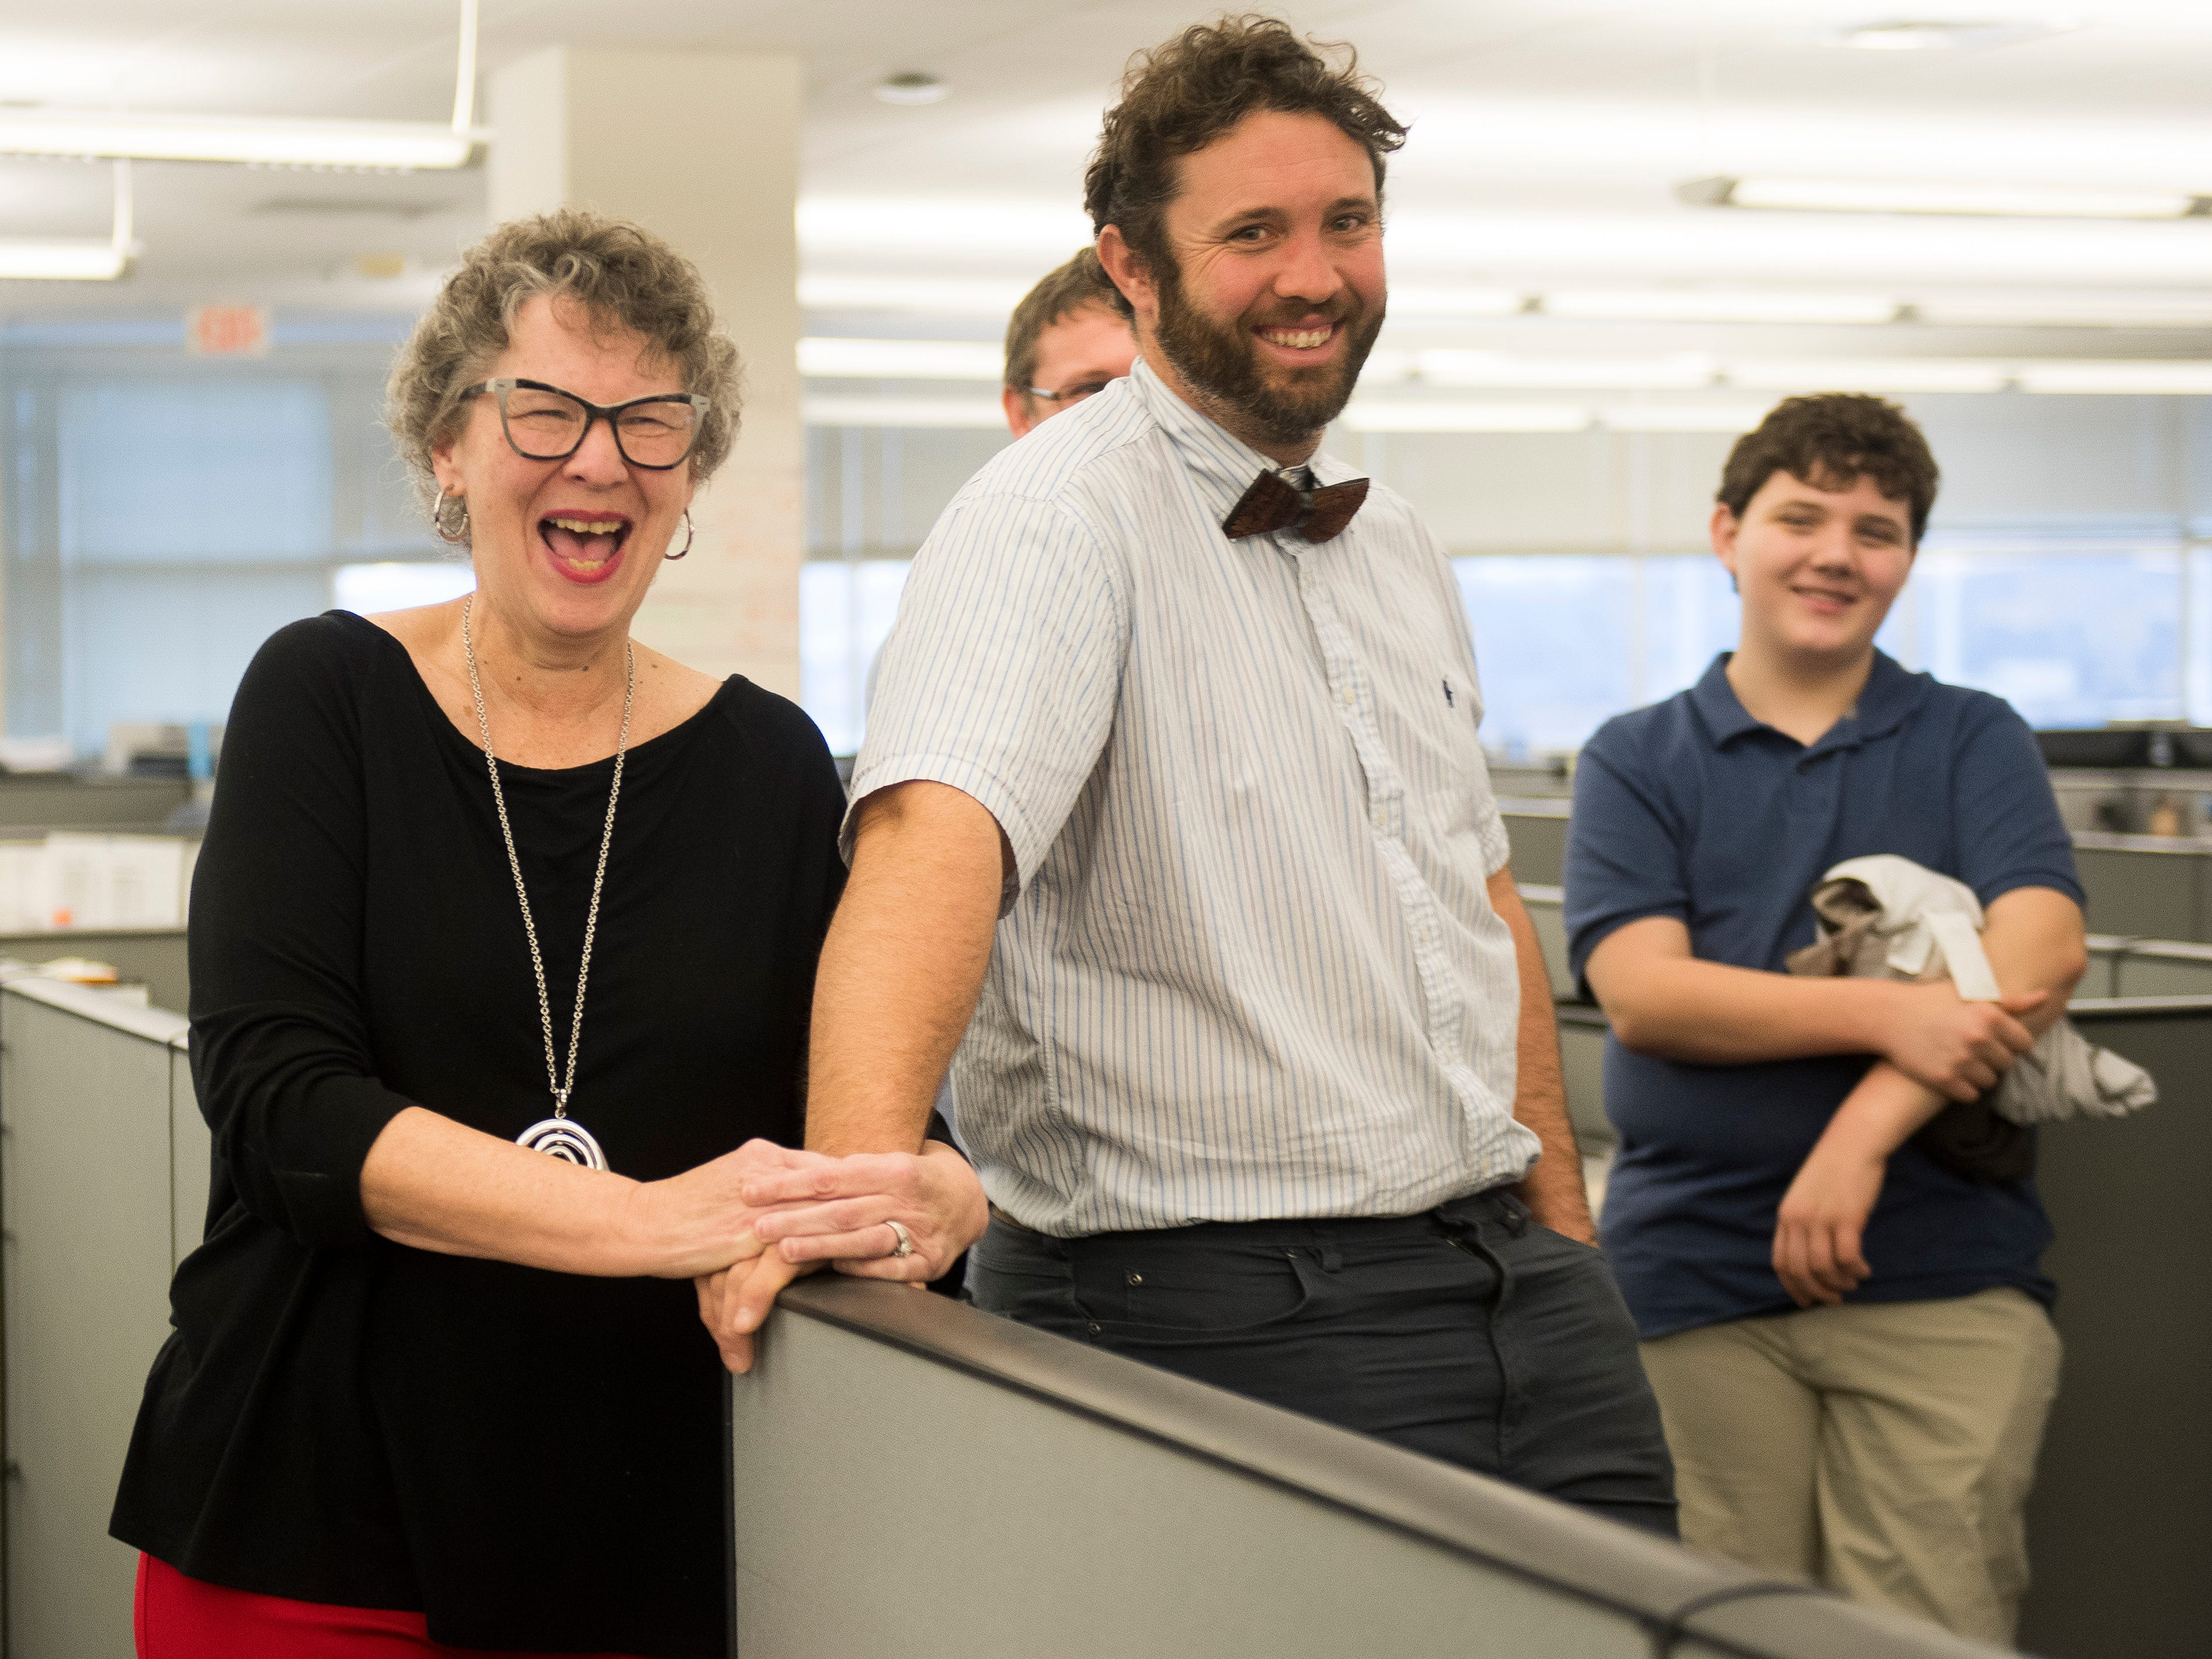 Features writer Mary Constantine, left, laughs during a retirement party on Wednesday, January 2, 2019. The Knoxville News Sentinel celebrated the retirements of Mary Constantine, Jack Lail and Michael Patrick.